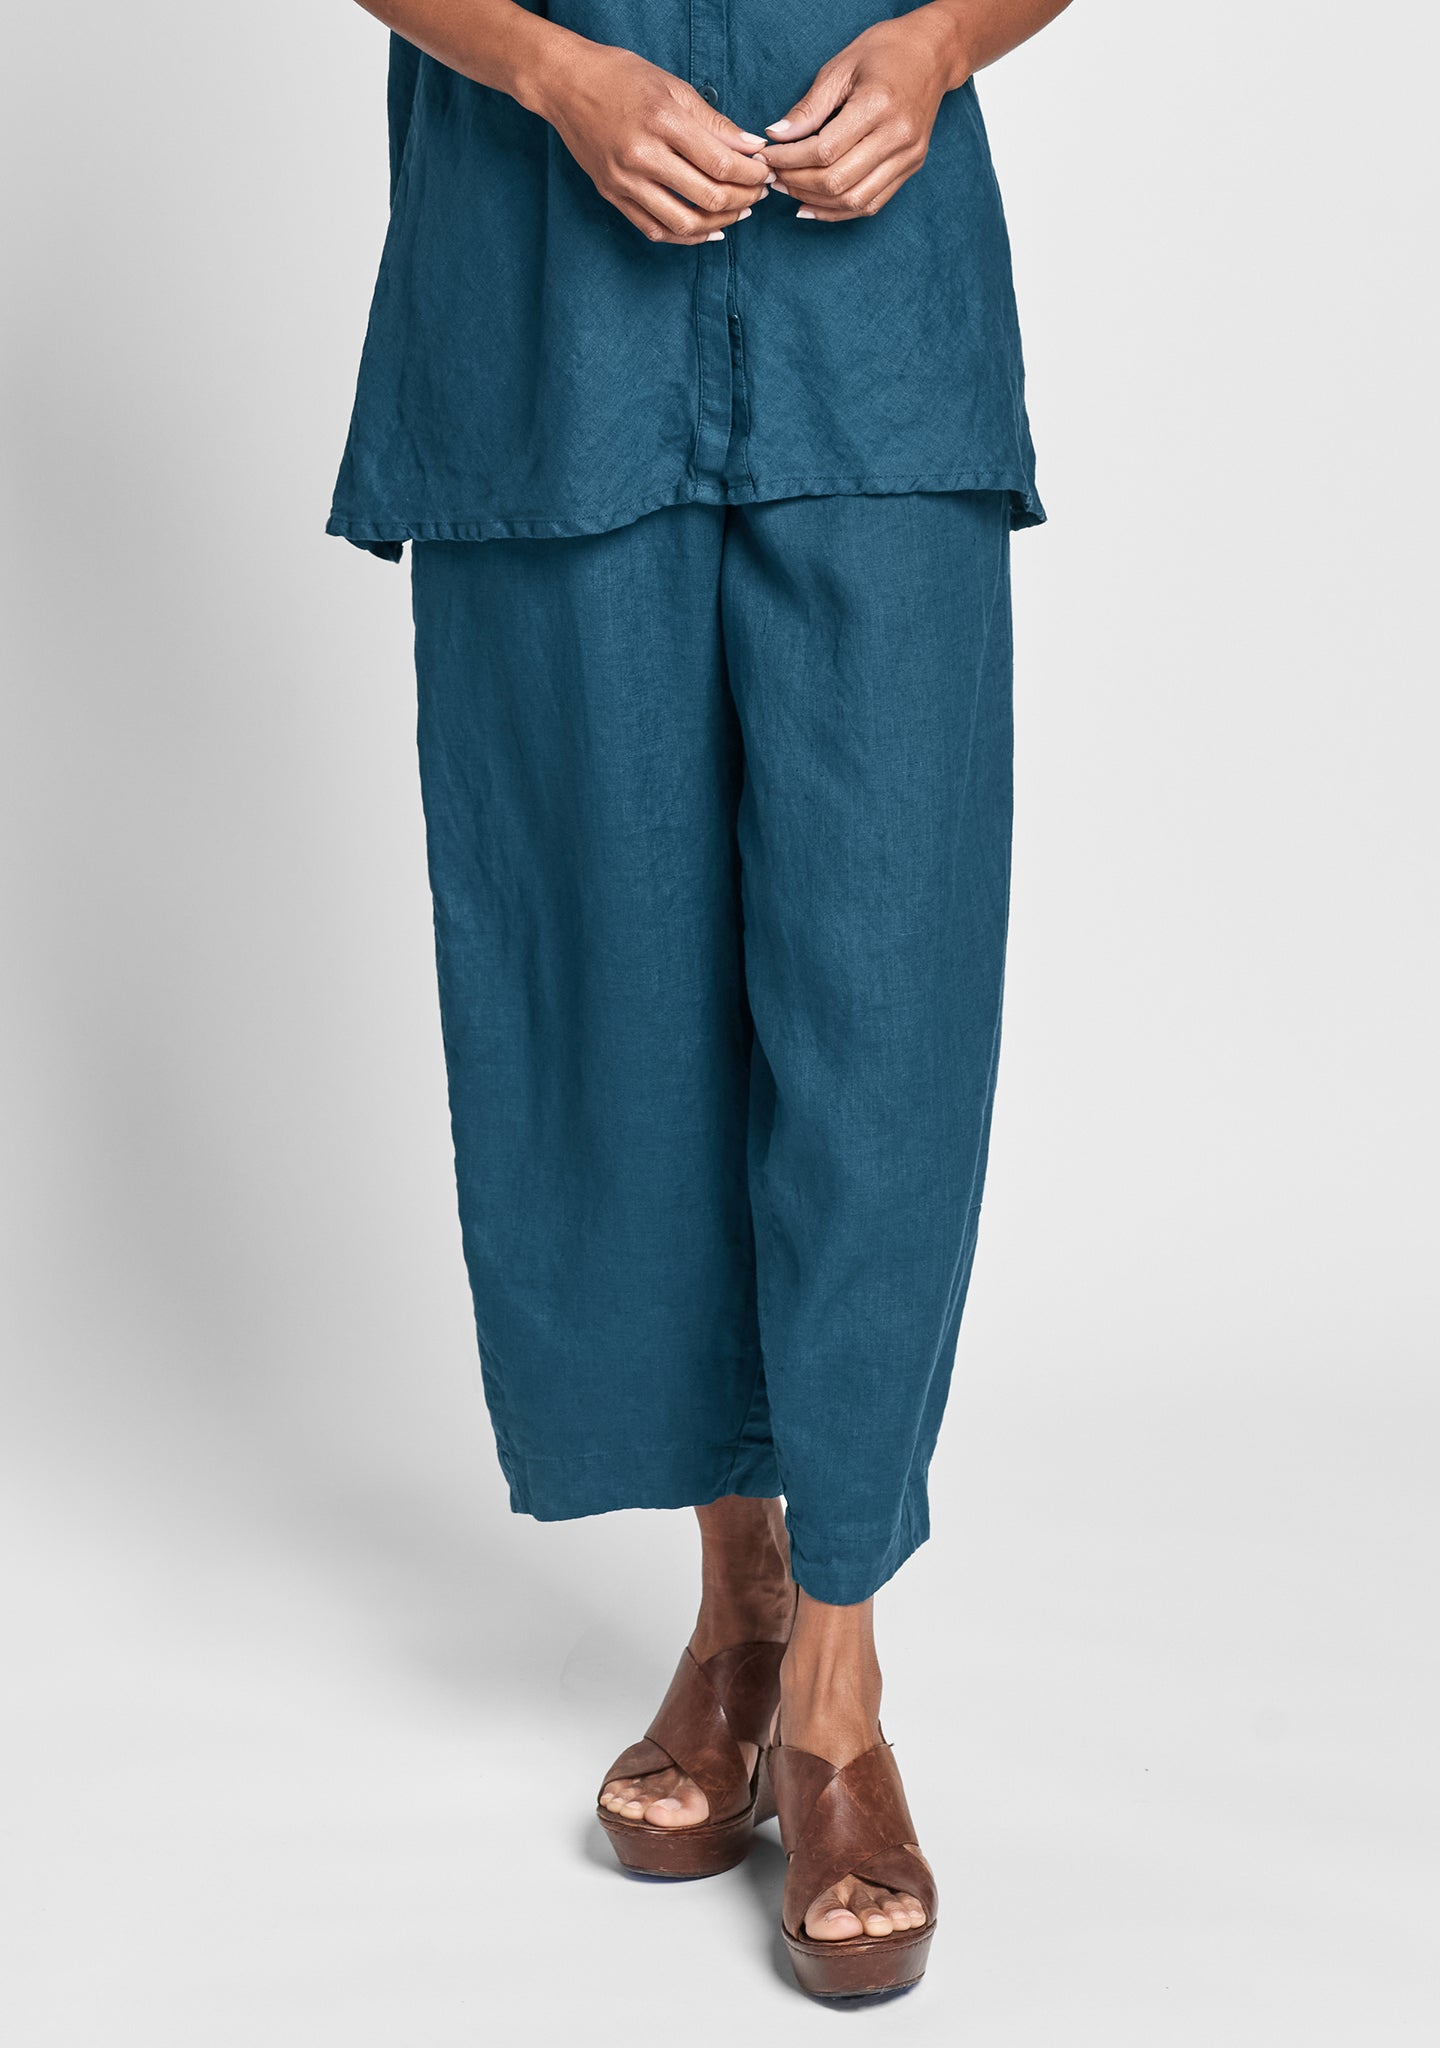 seamly pant linen pants green